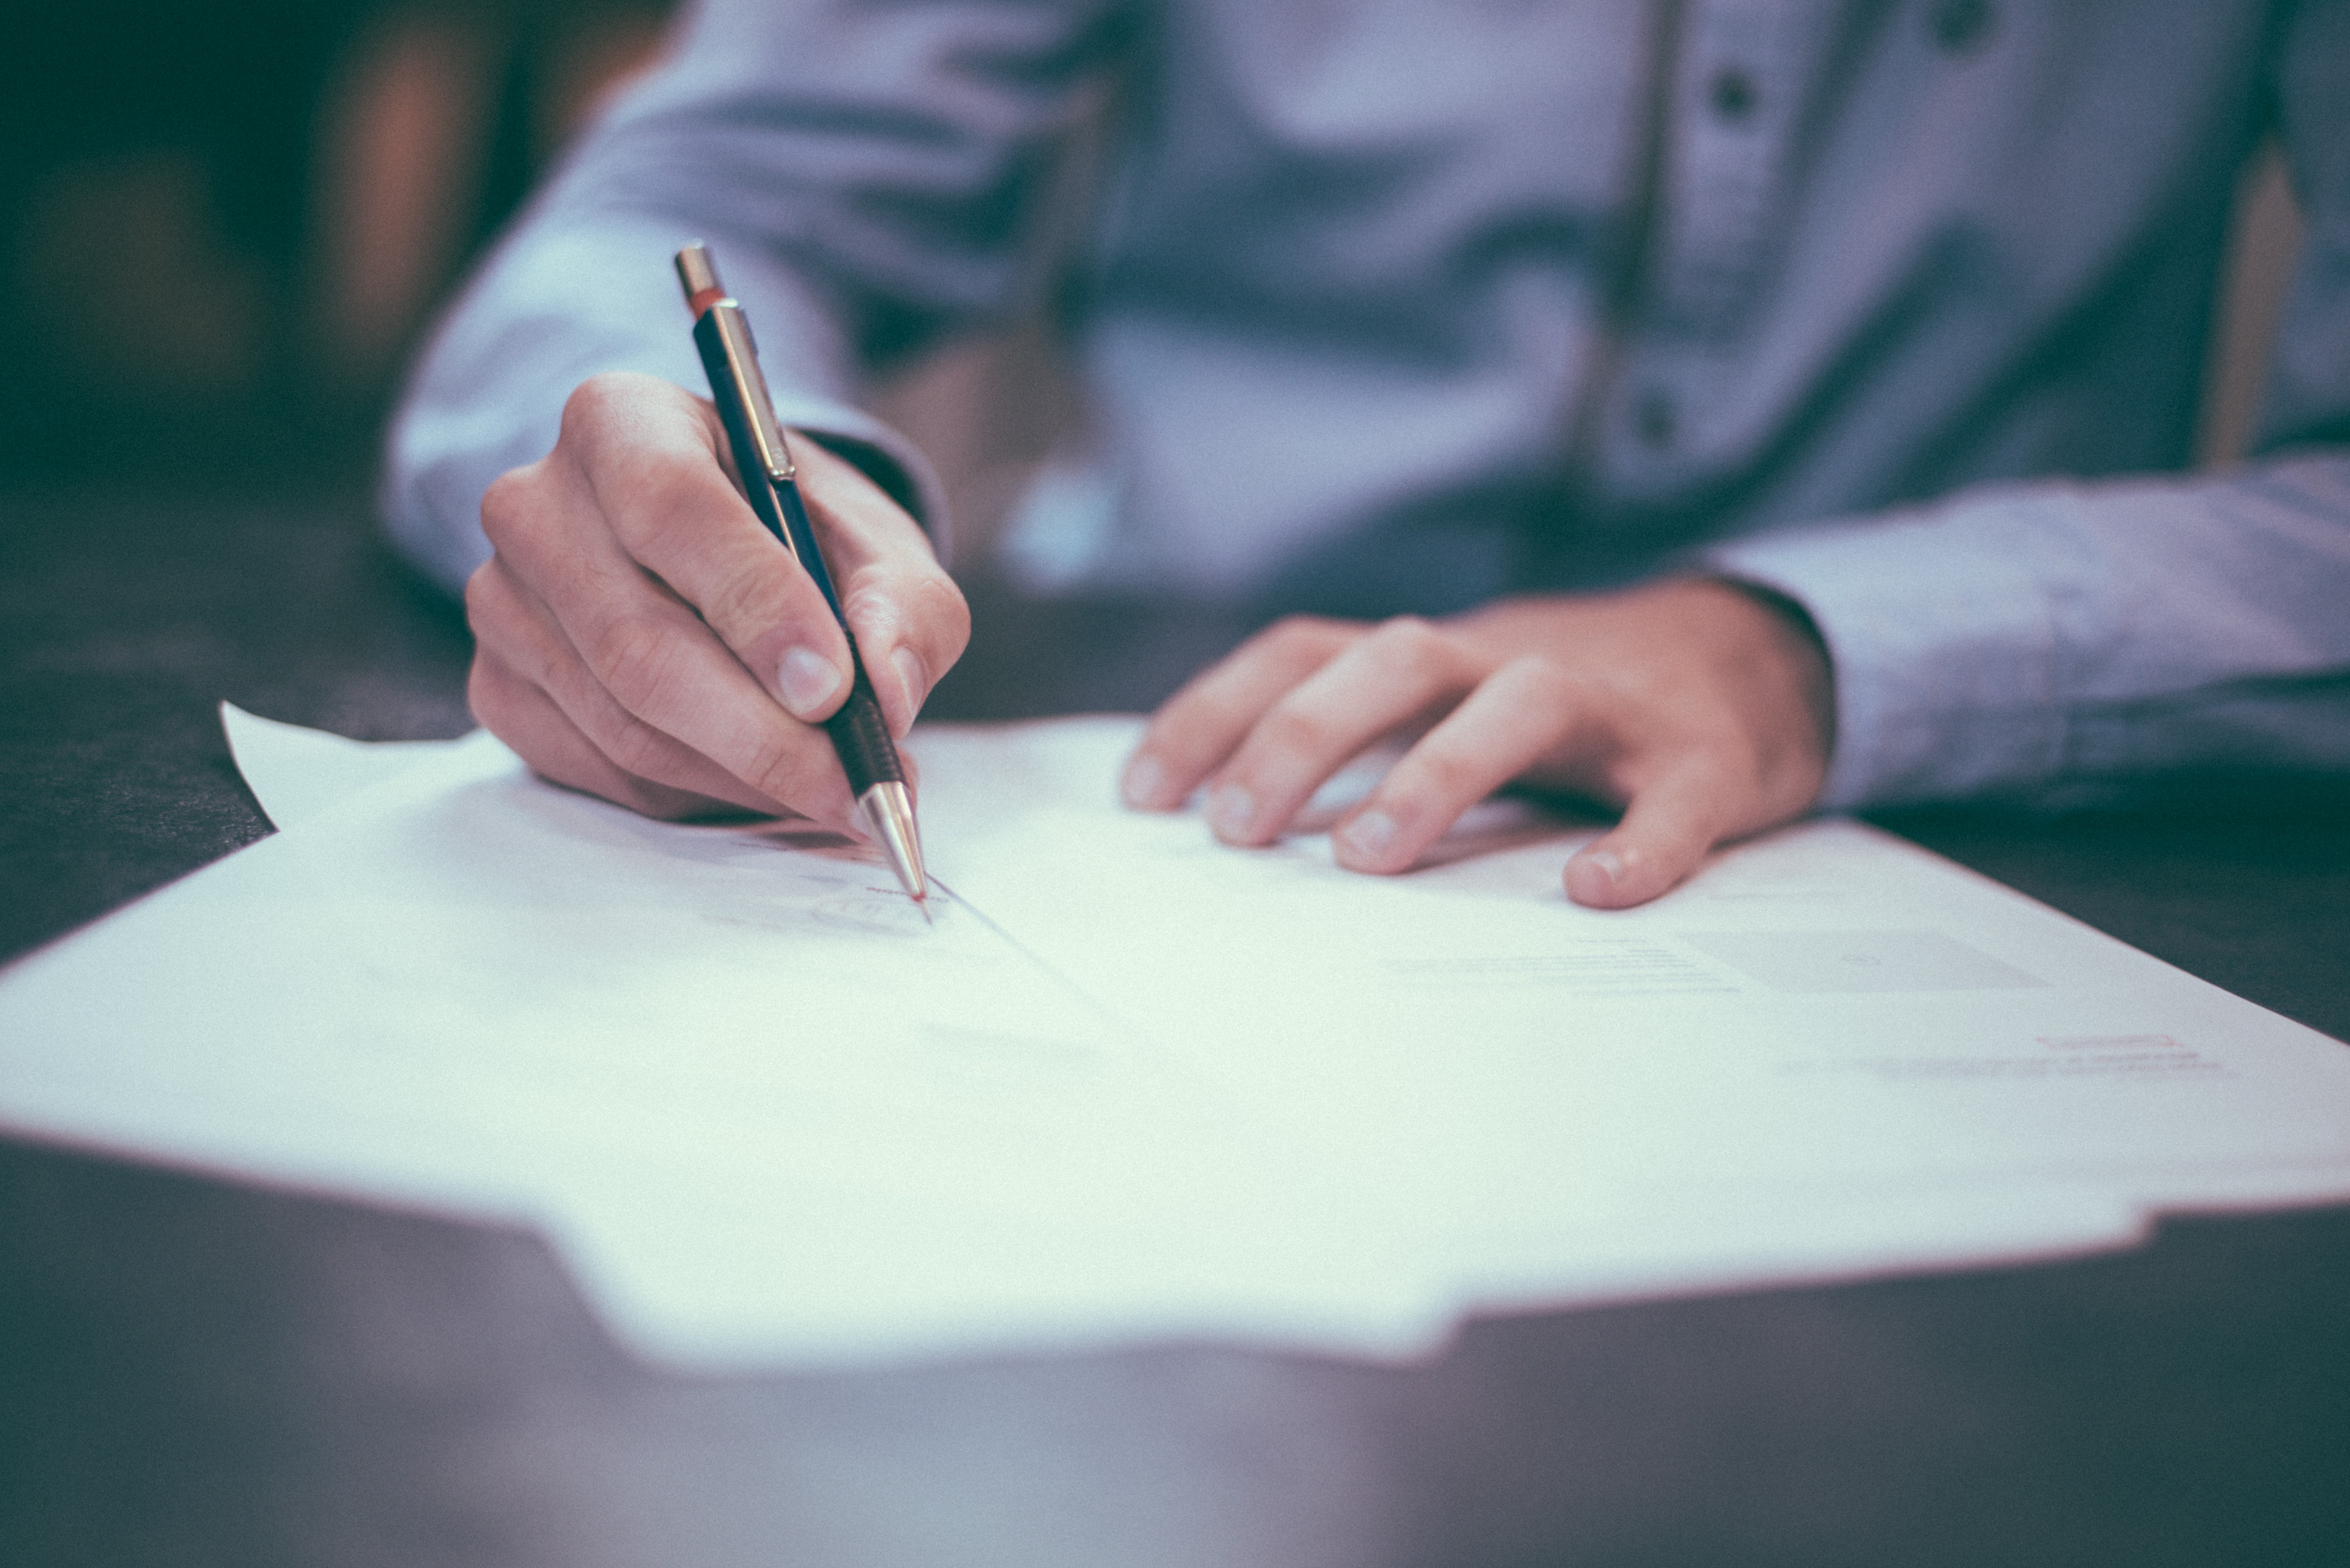 Failure to fine-tune the contract for the project